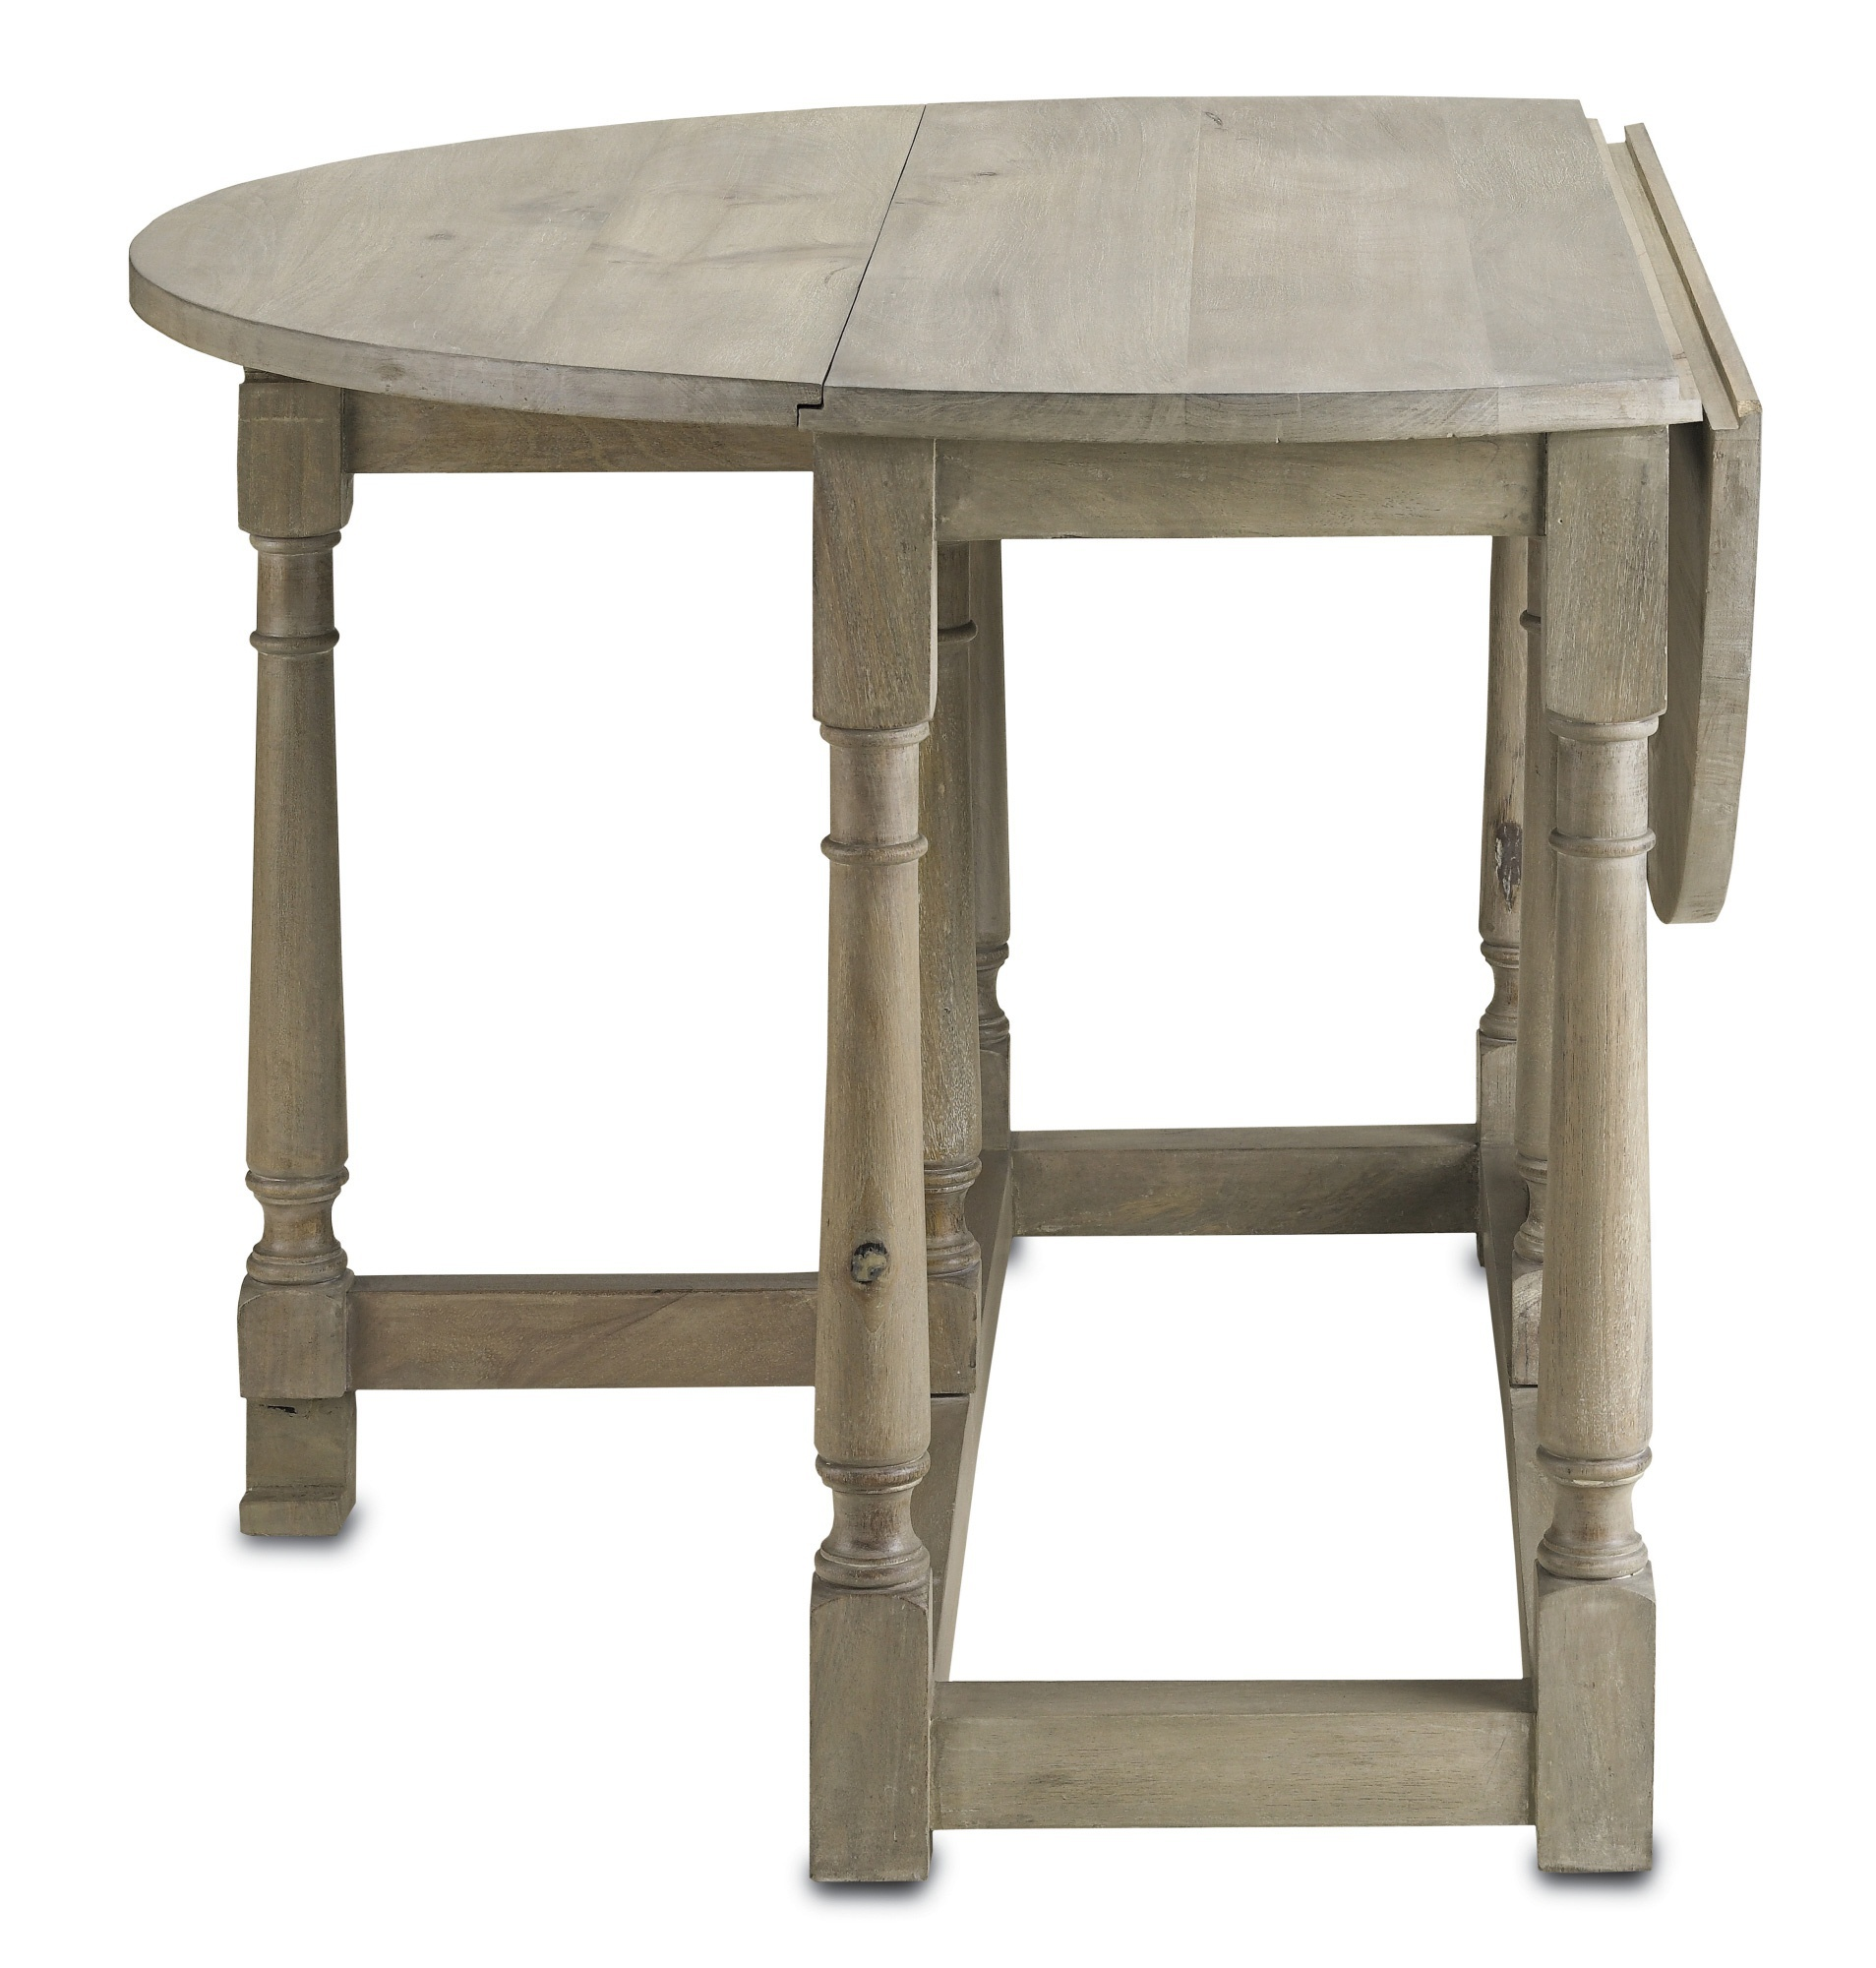 Table round foldable Garrison natural wood Currey